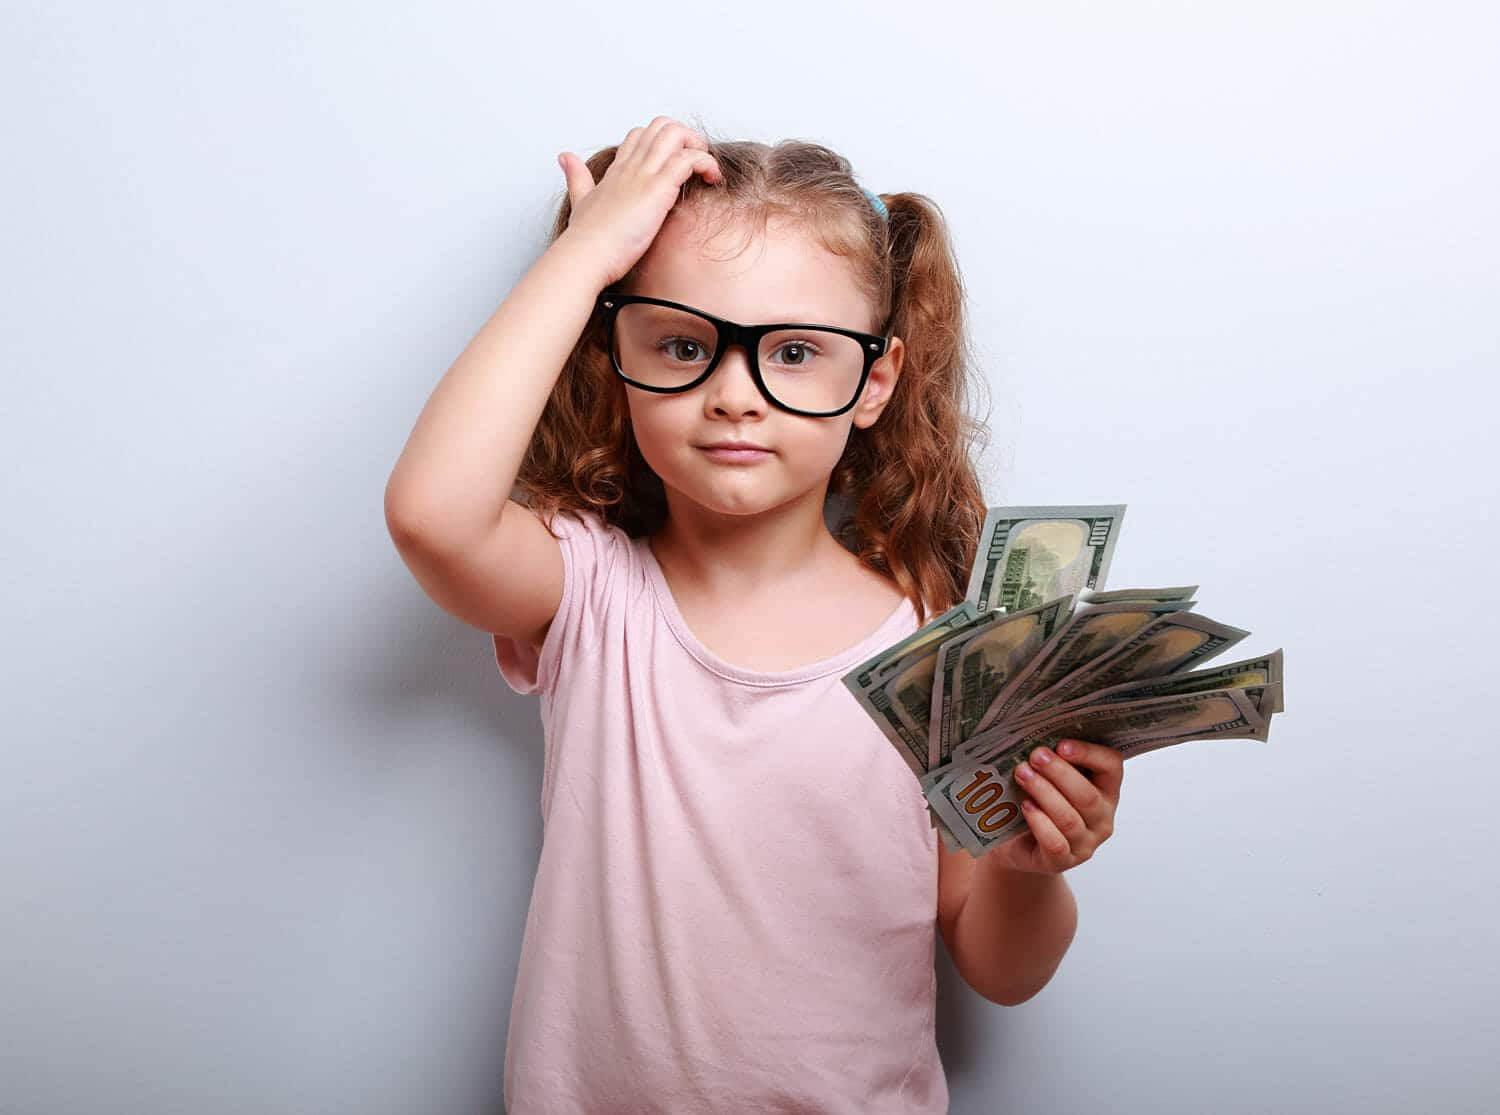 child support spending